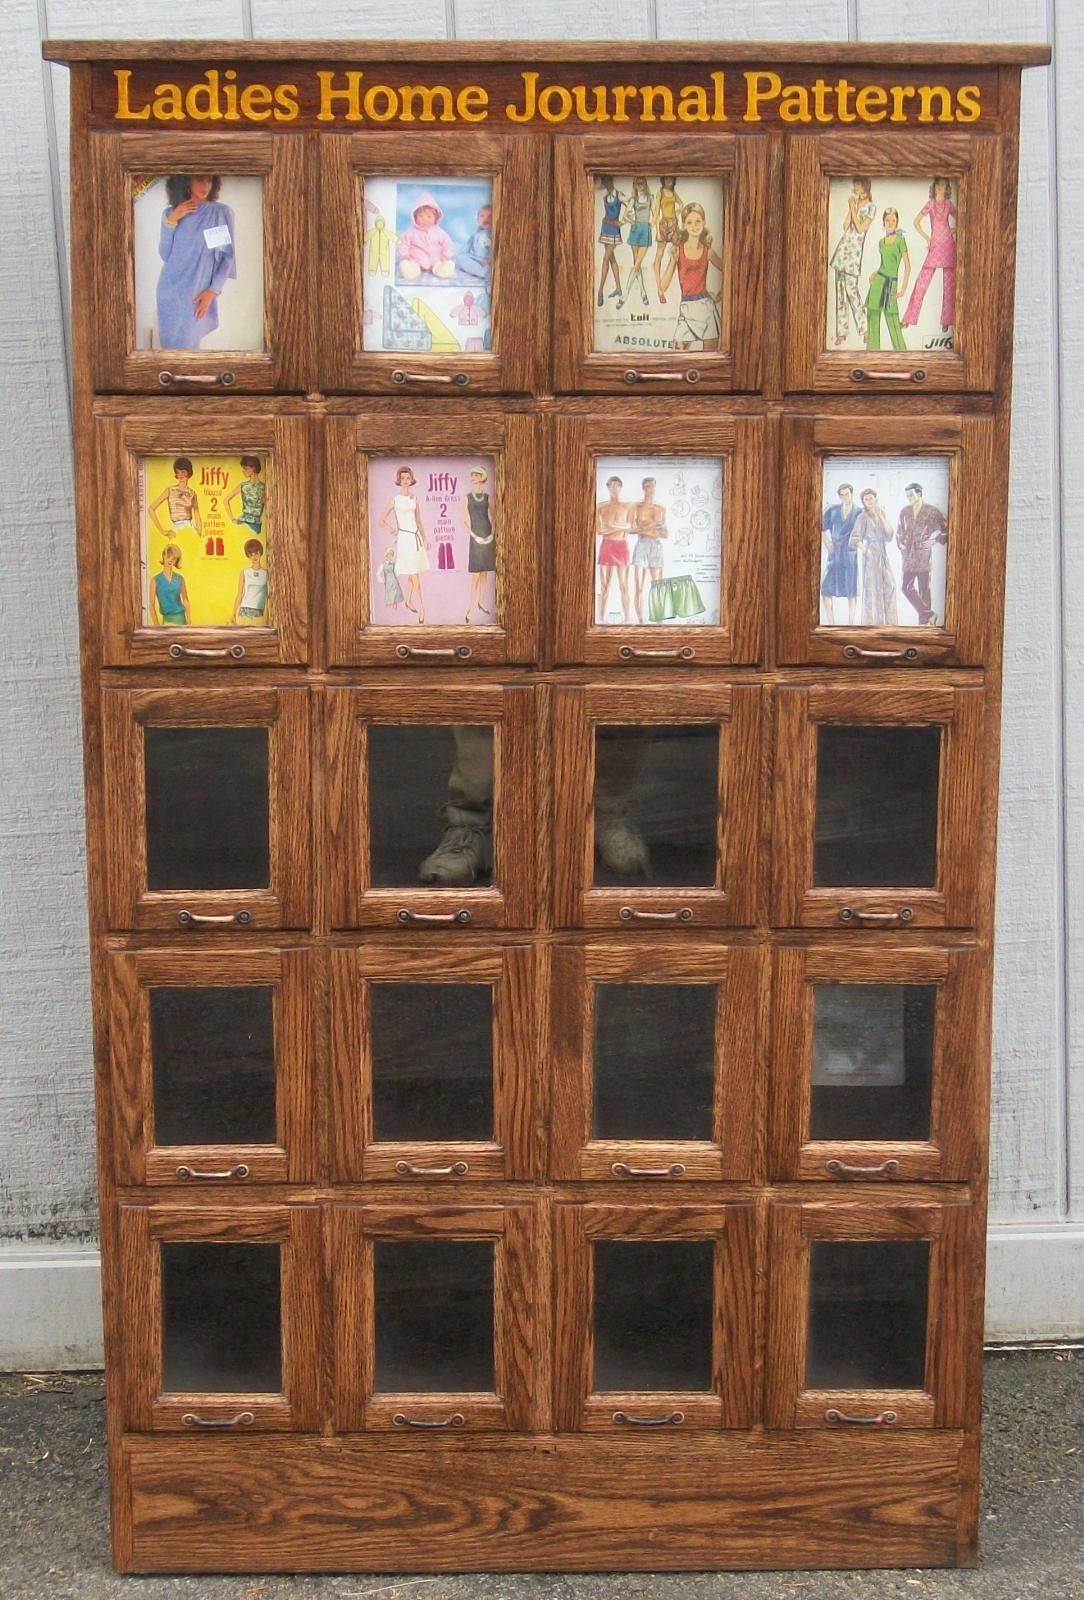 Ladies Home Journal Pattern Cabinet, 20 Glass Front Drawers, BRASS ...